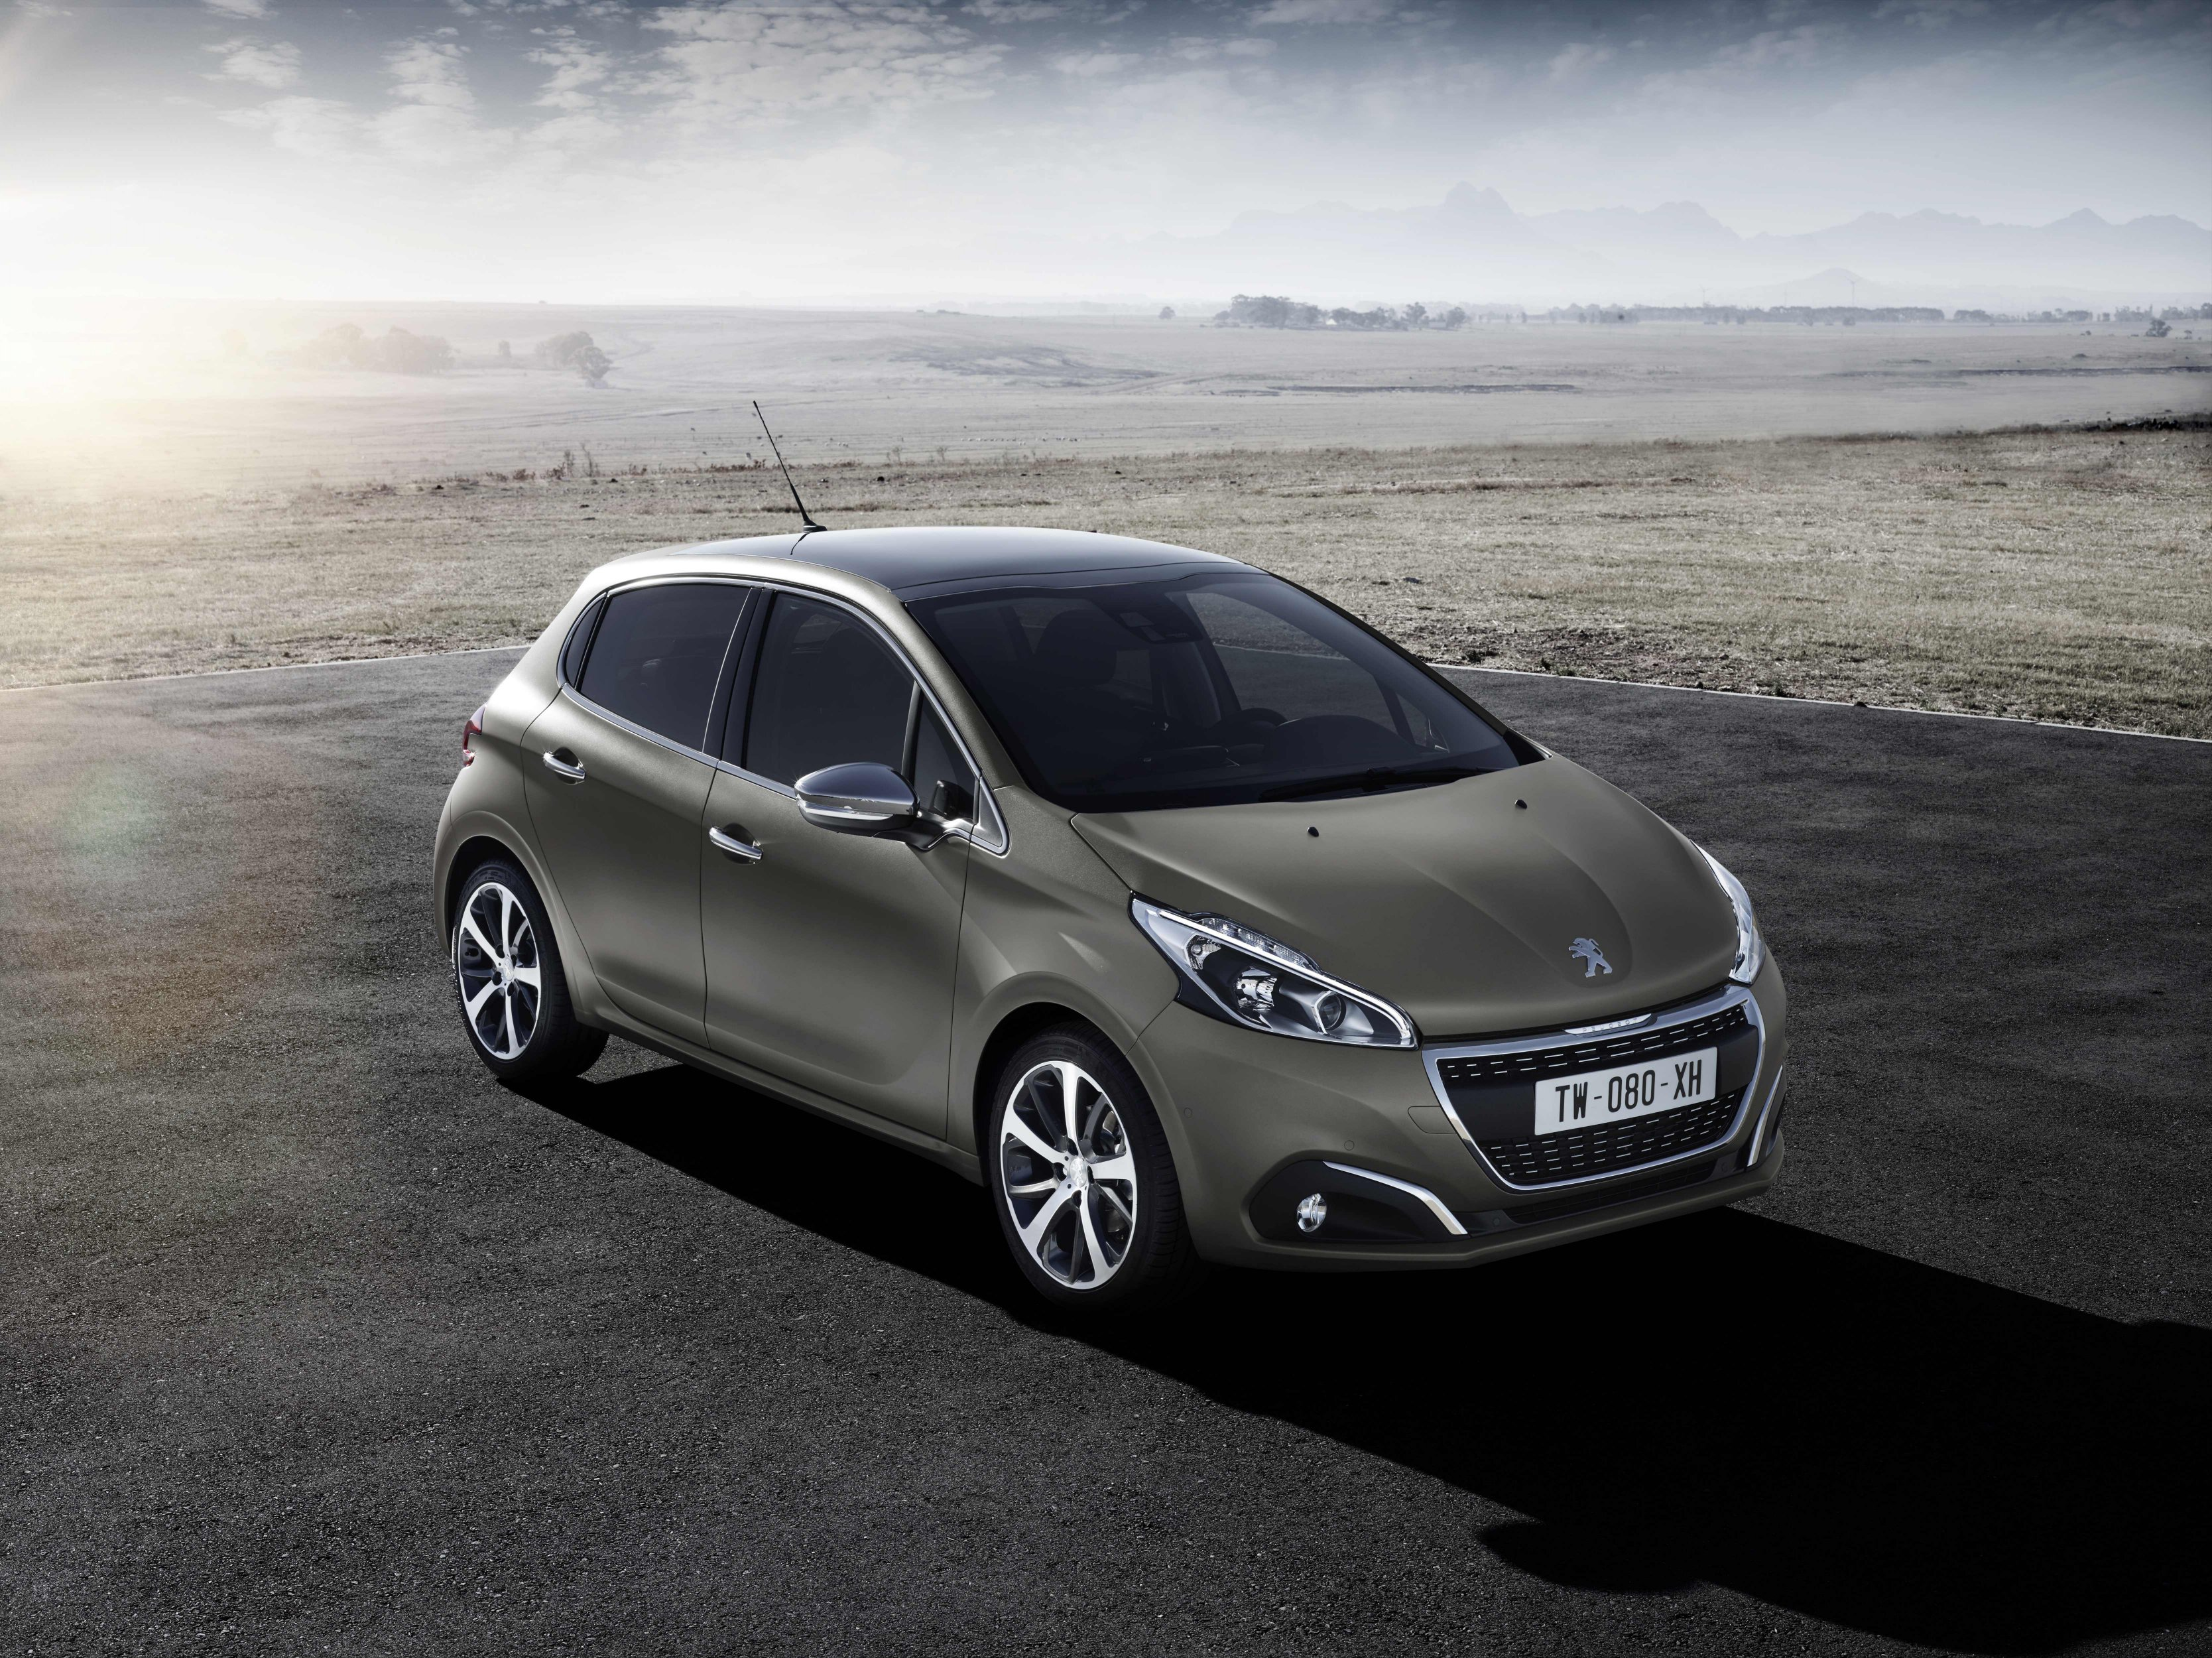 New Peugeot 208 A Splash Of Style With Innovative World First